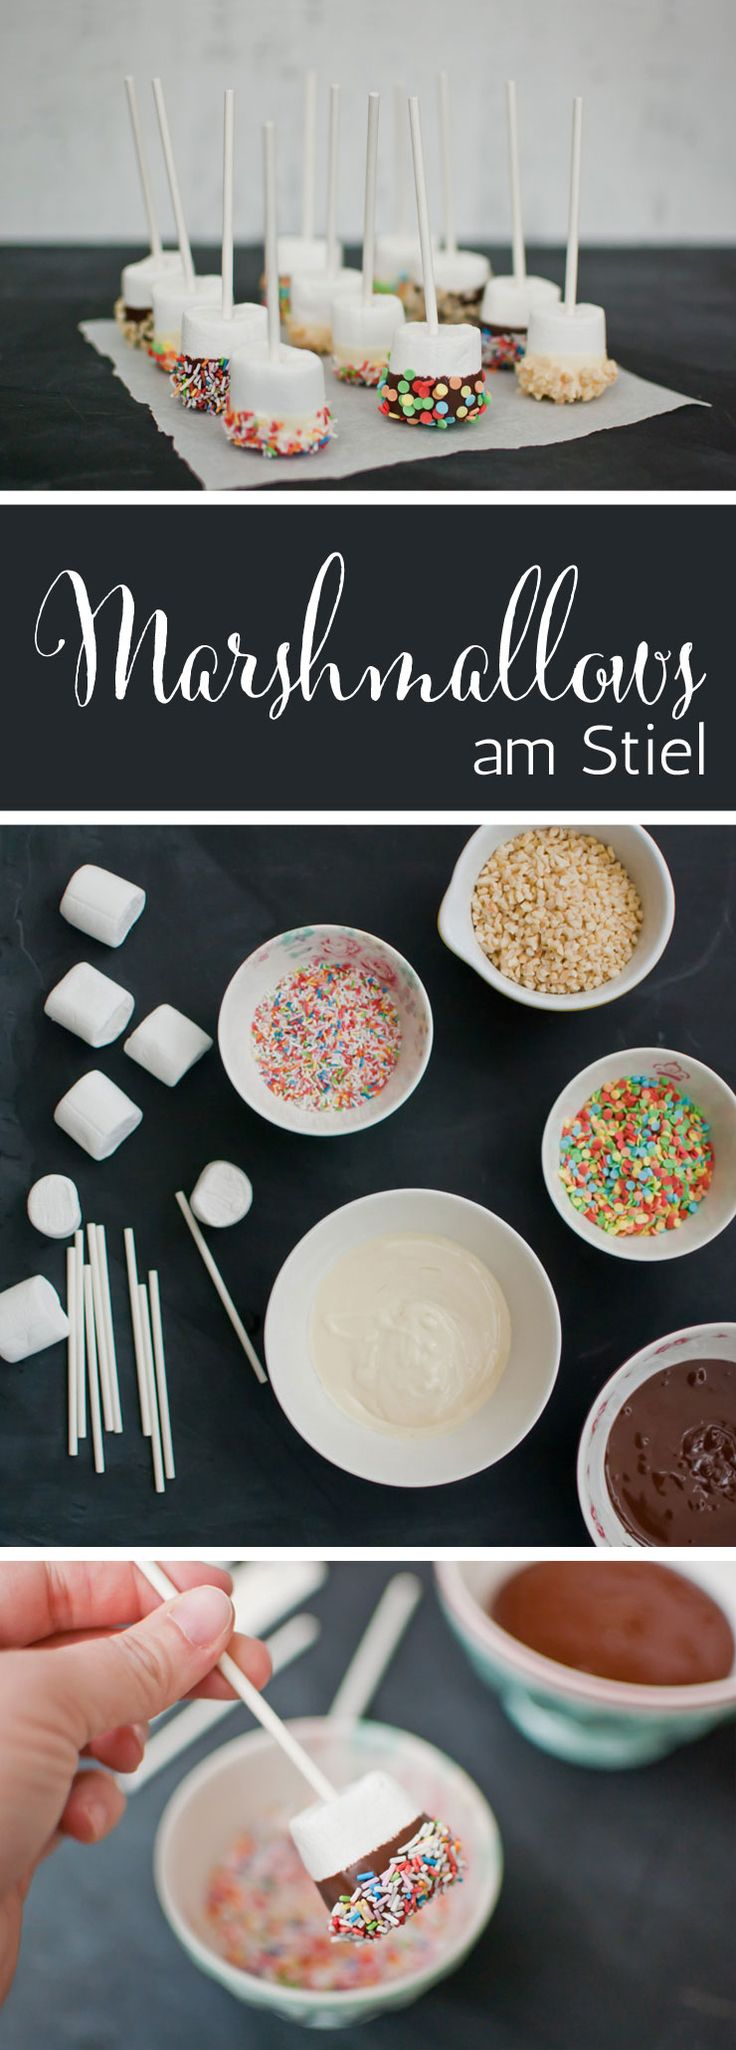 Leckere & einfache Marshmallows am Stiel von {nifty thrifty things}